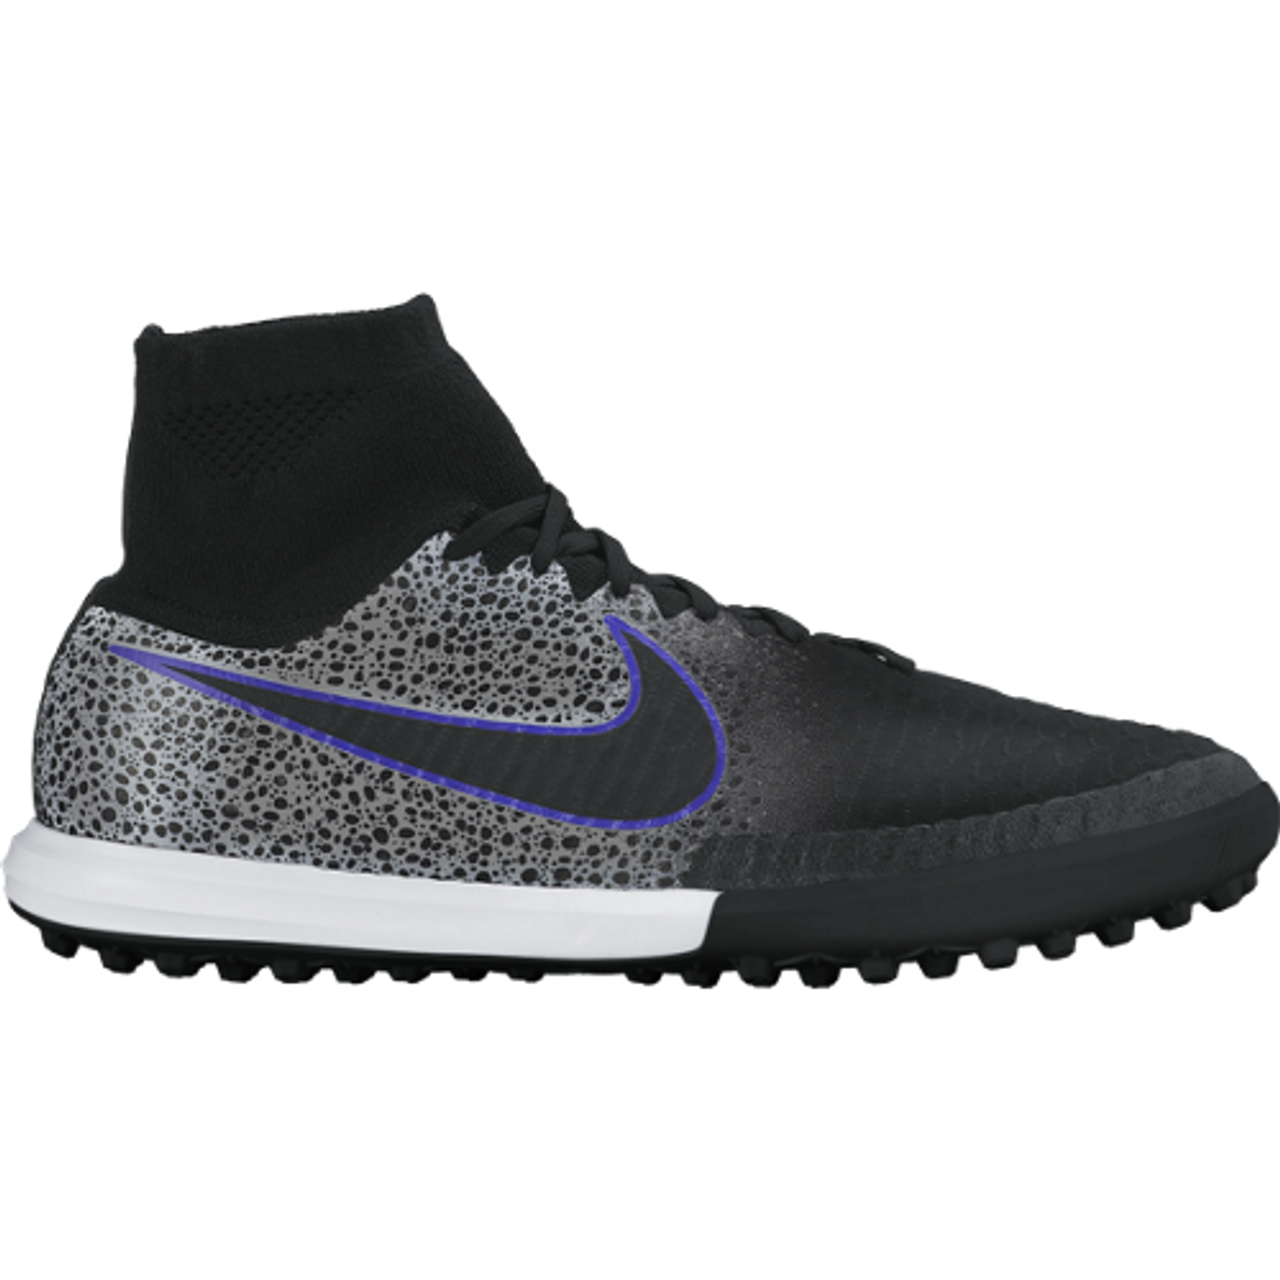 purchase cheap 46af8 eec5e NIKE MAGISTAX PROXIMO TF BLACK WOLF GREY turf soccer shoes - Soccer Plus